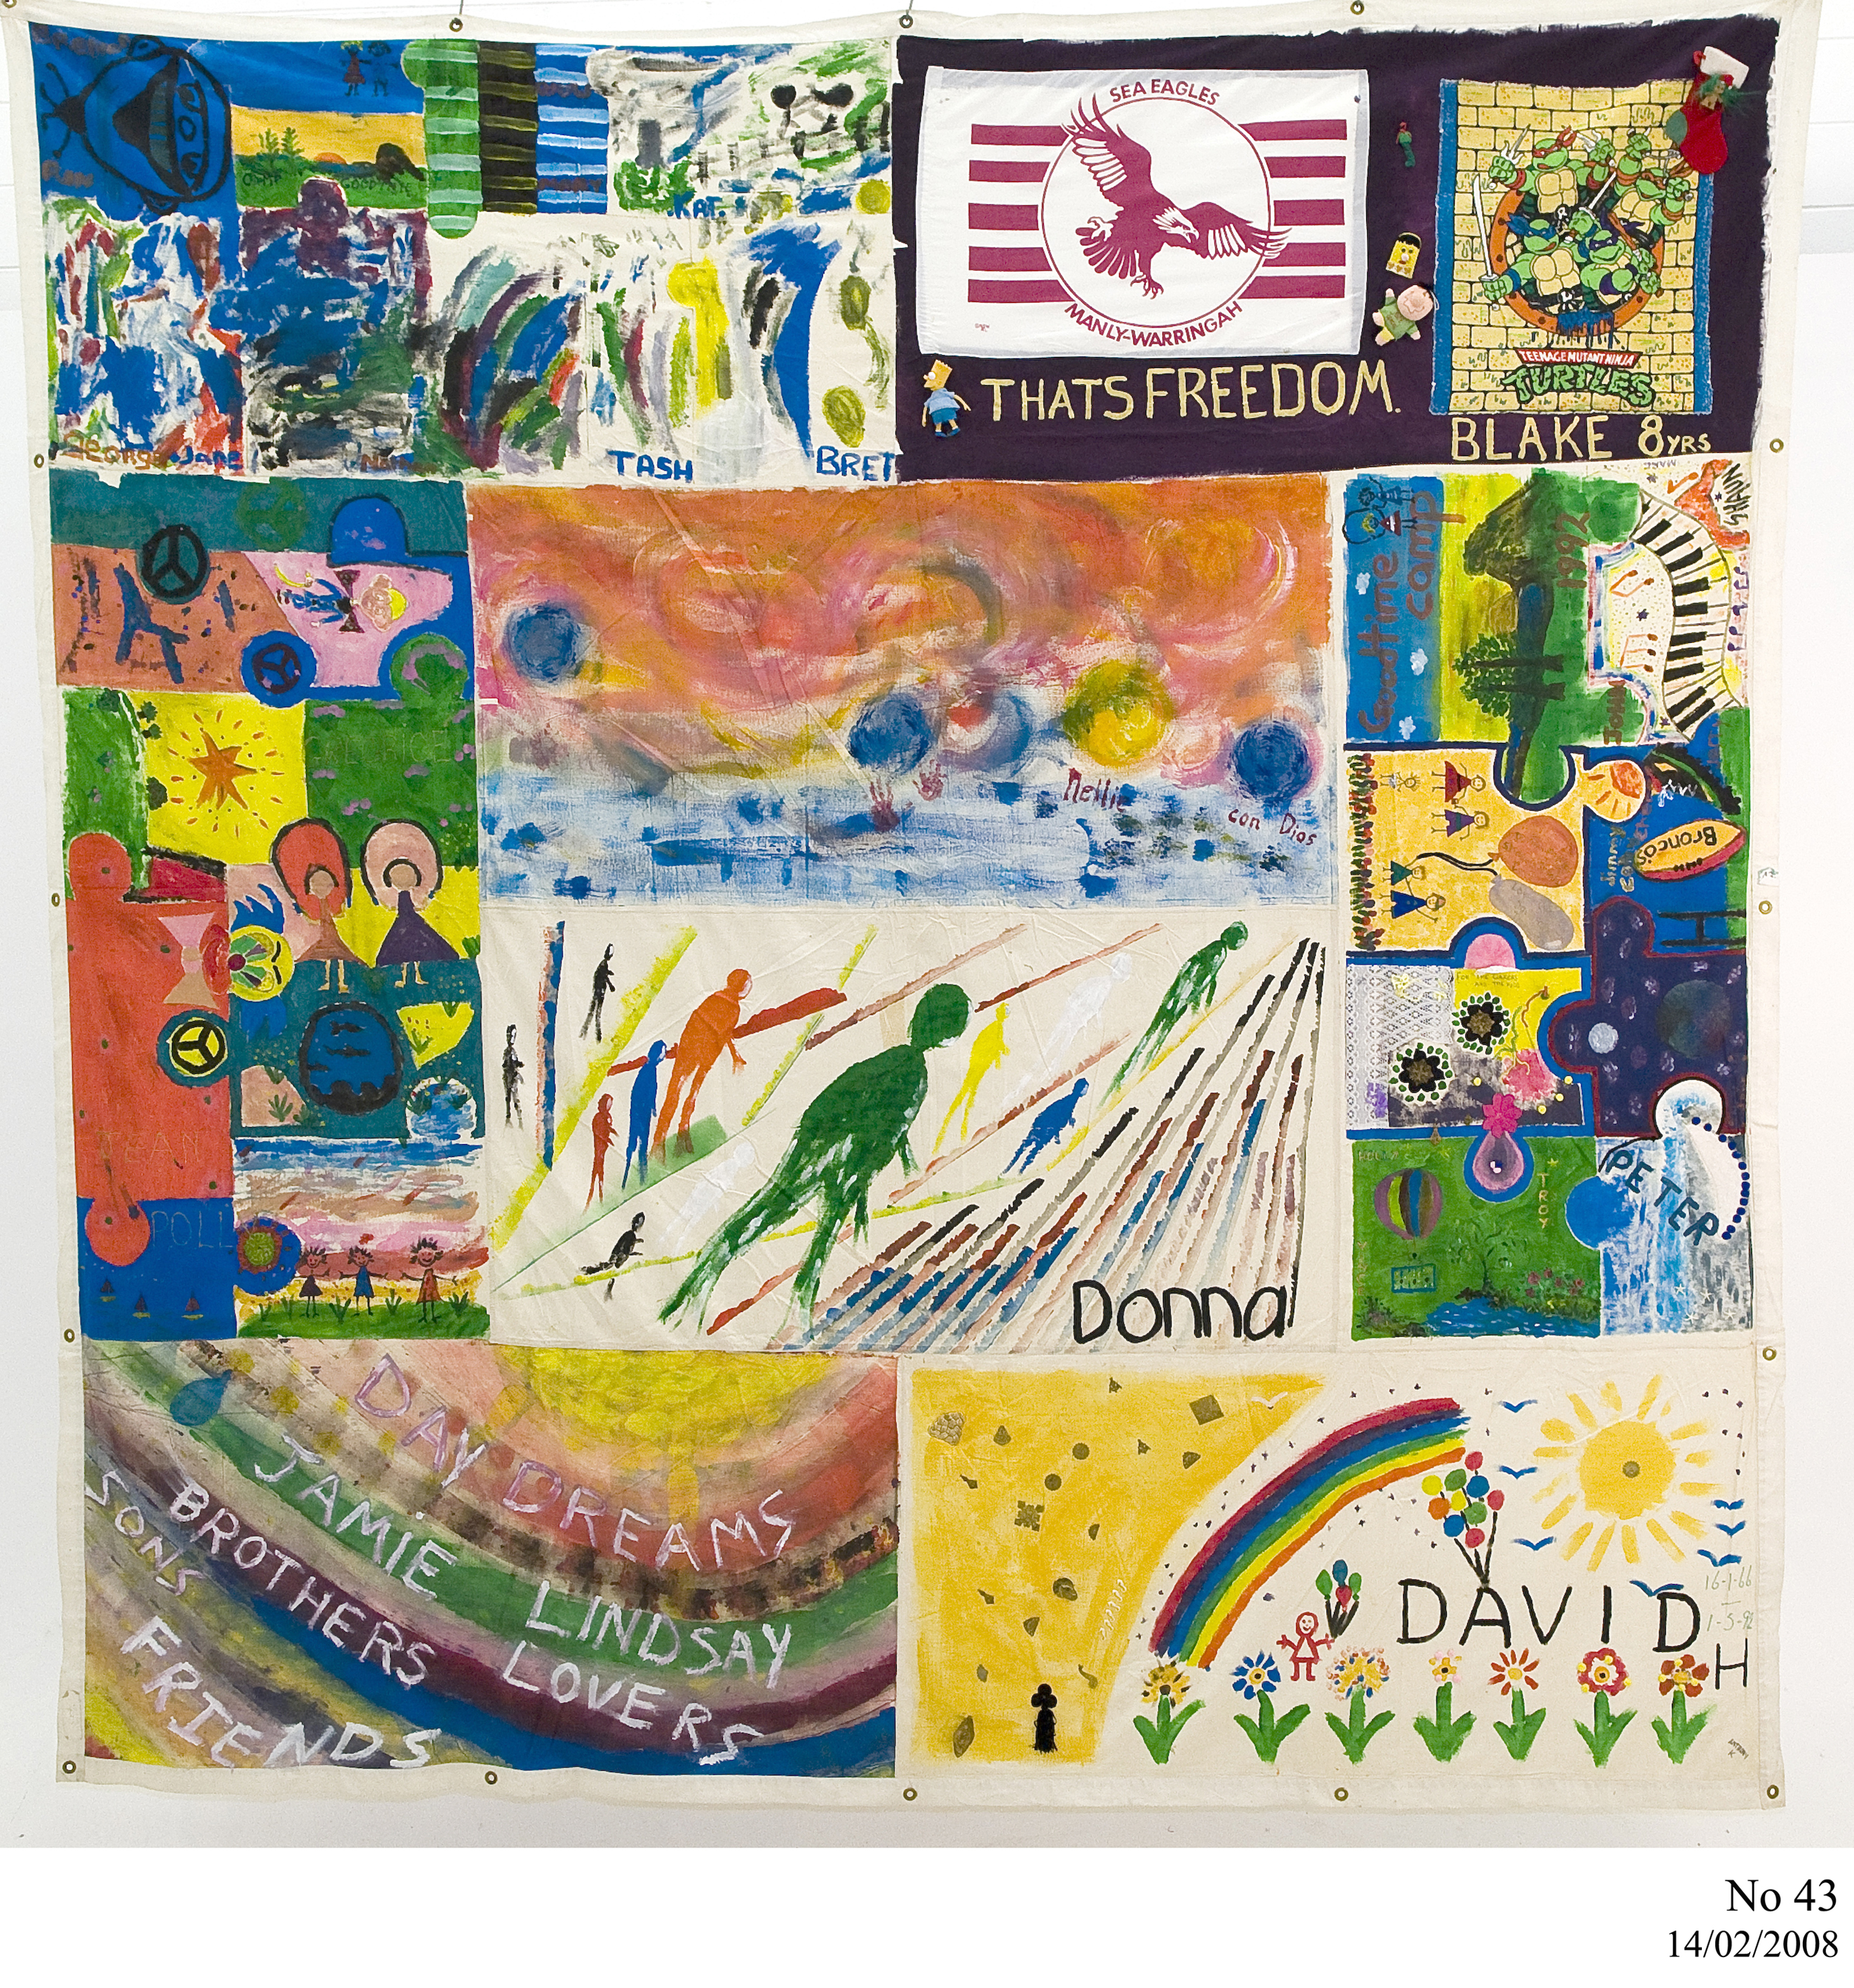 World AIDS Day 2013 – Inside the Collection : world aids day quilt - Adamdwight.com